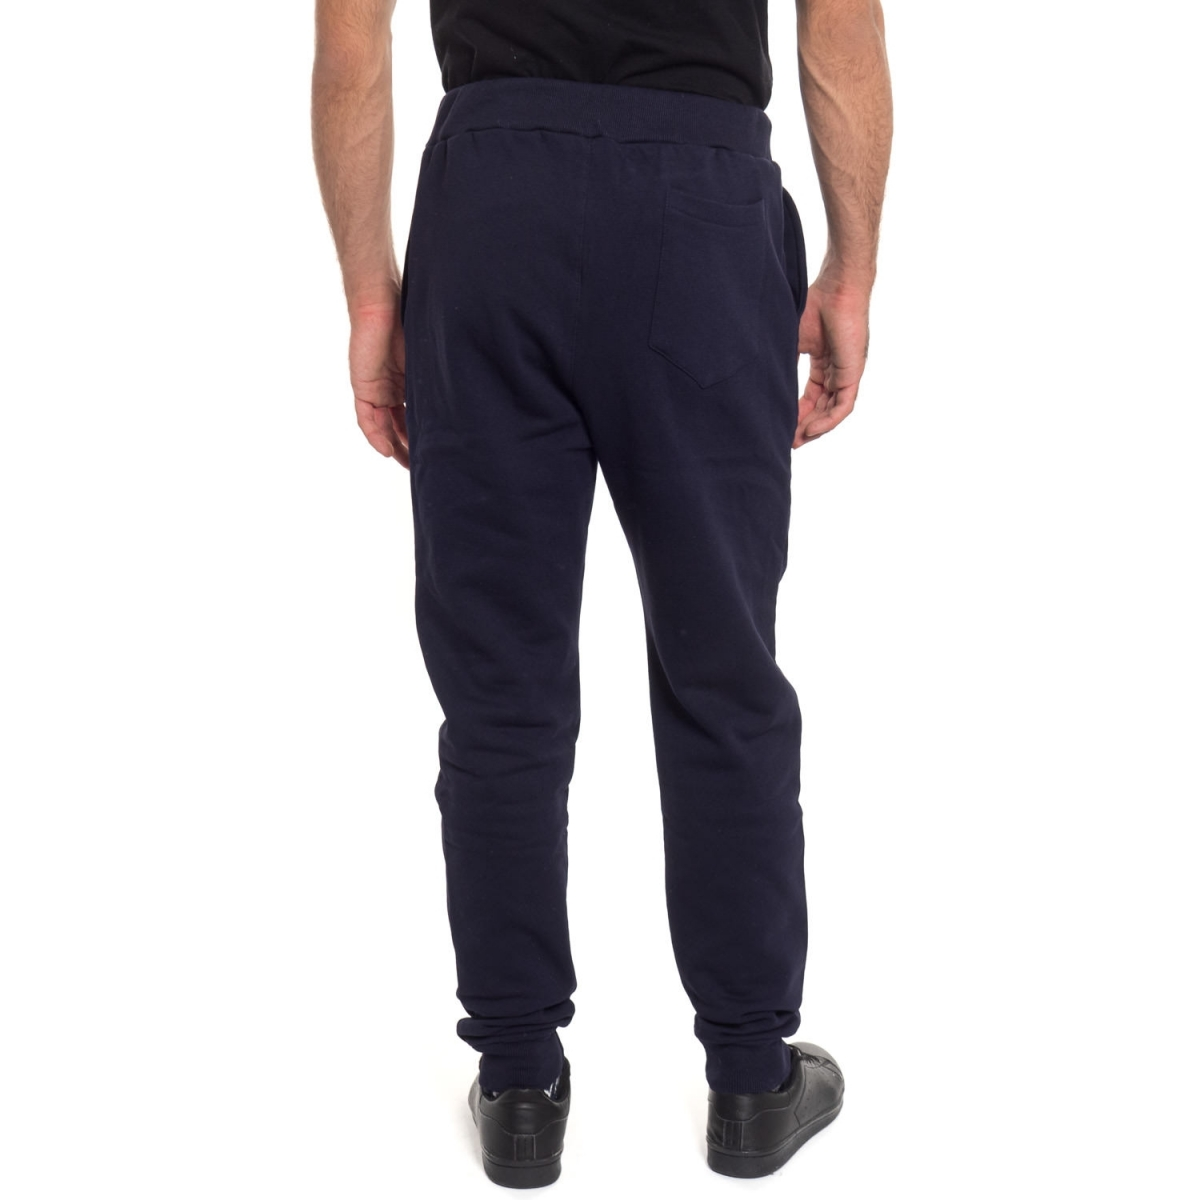 clothing Pants men Pantalone LPAT9194 LANDEK PARK Cafedelmar Shop